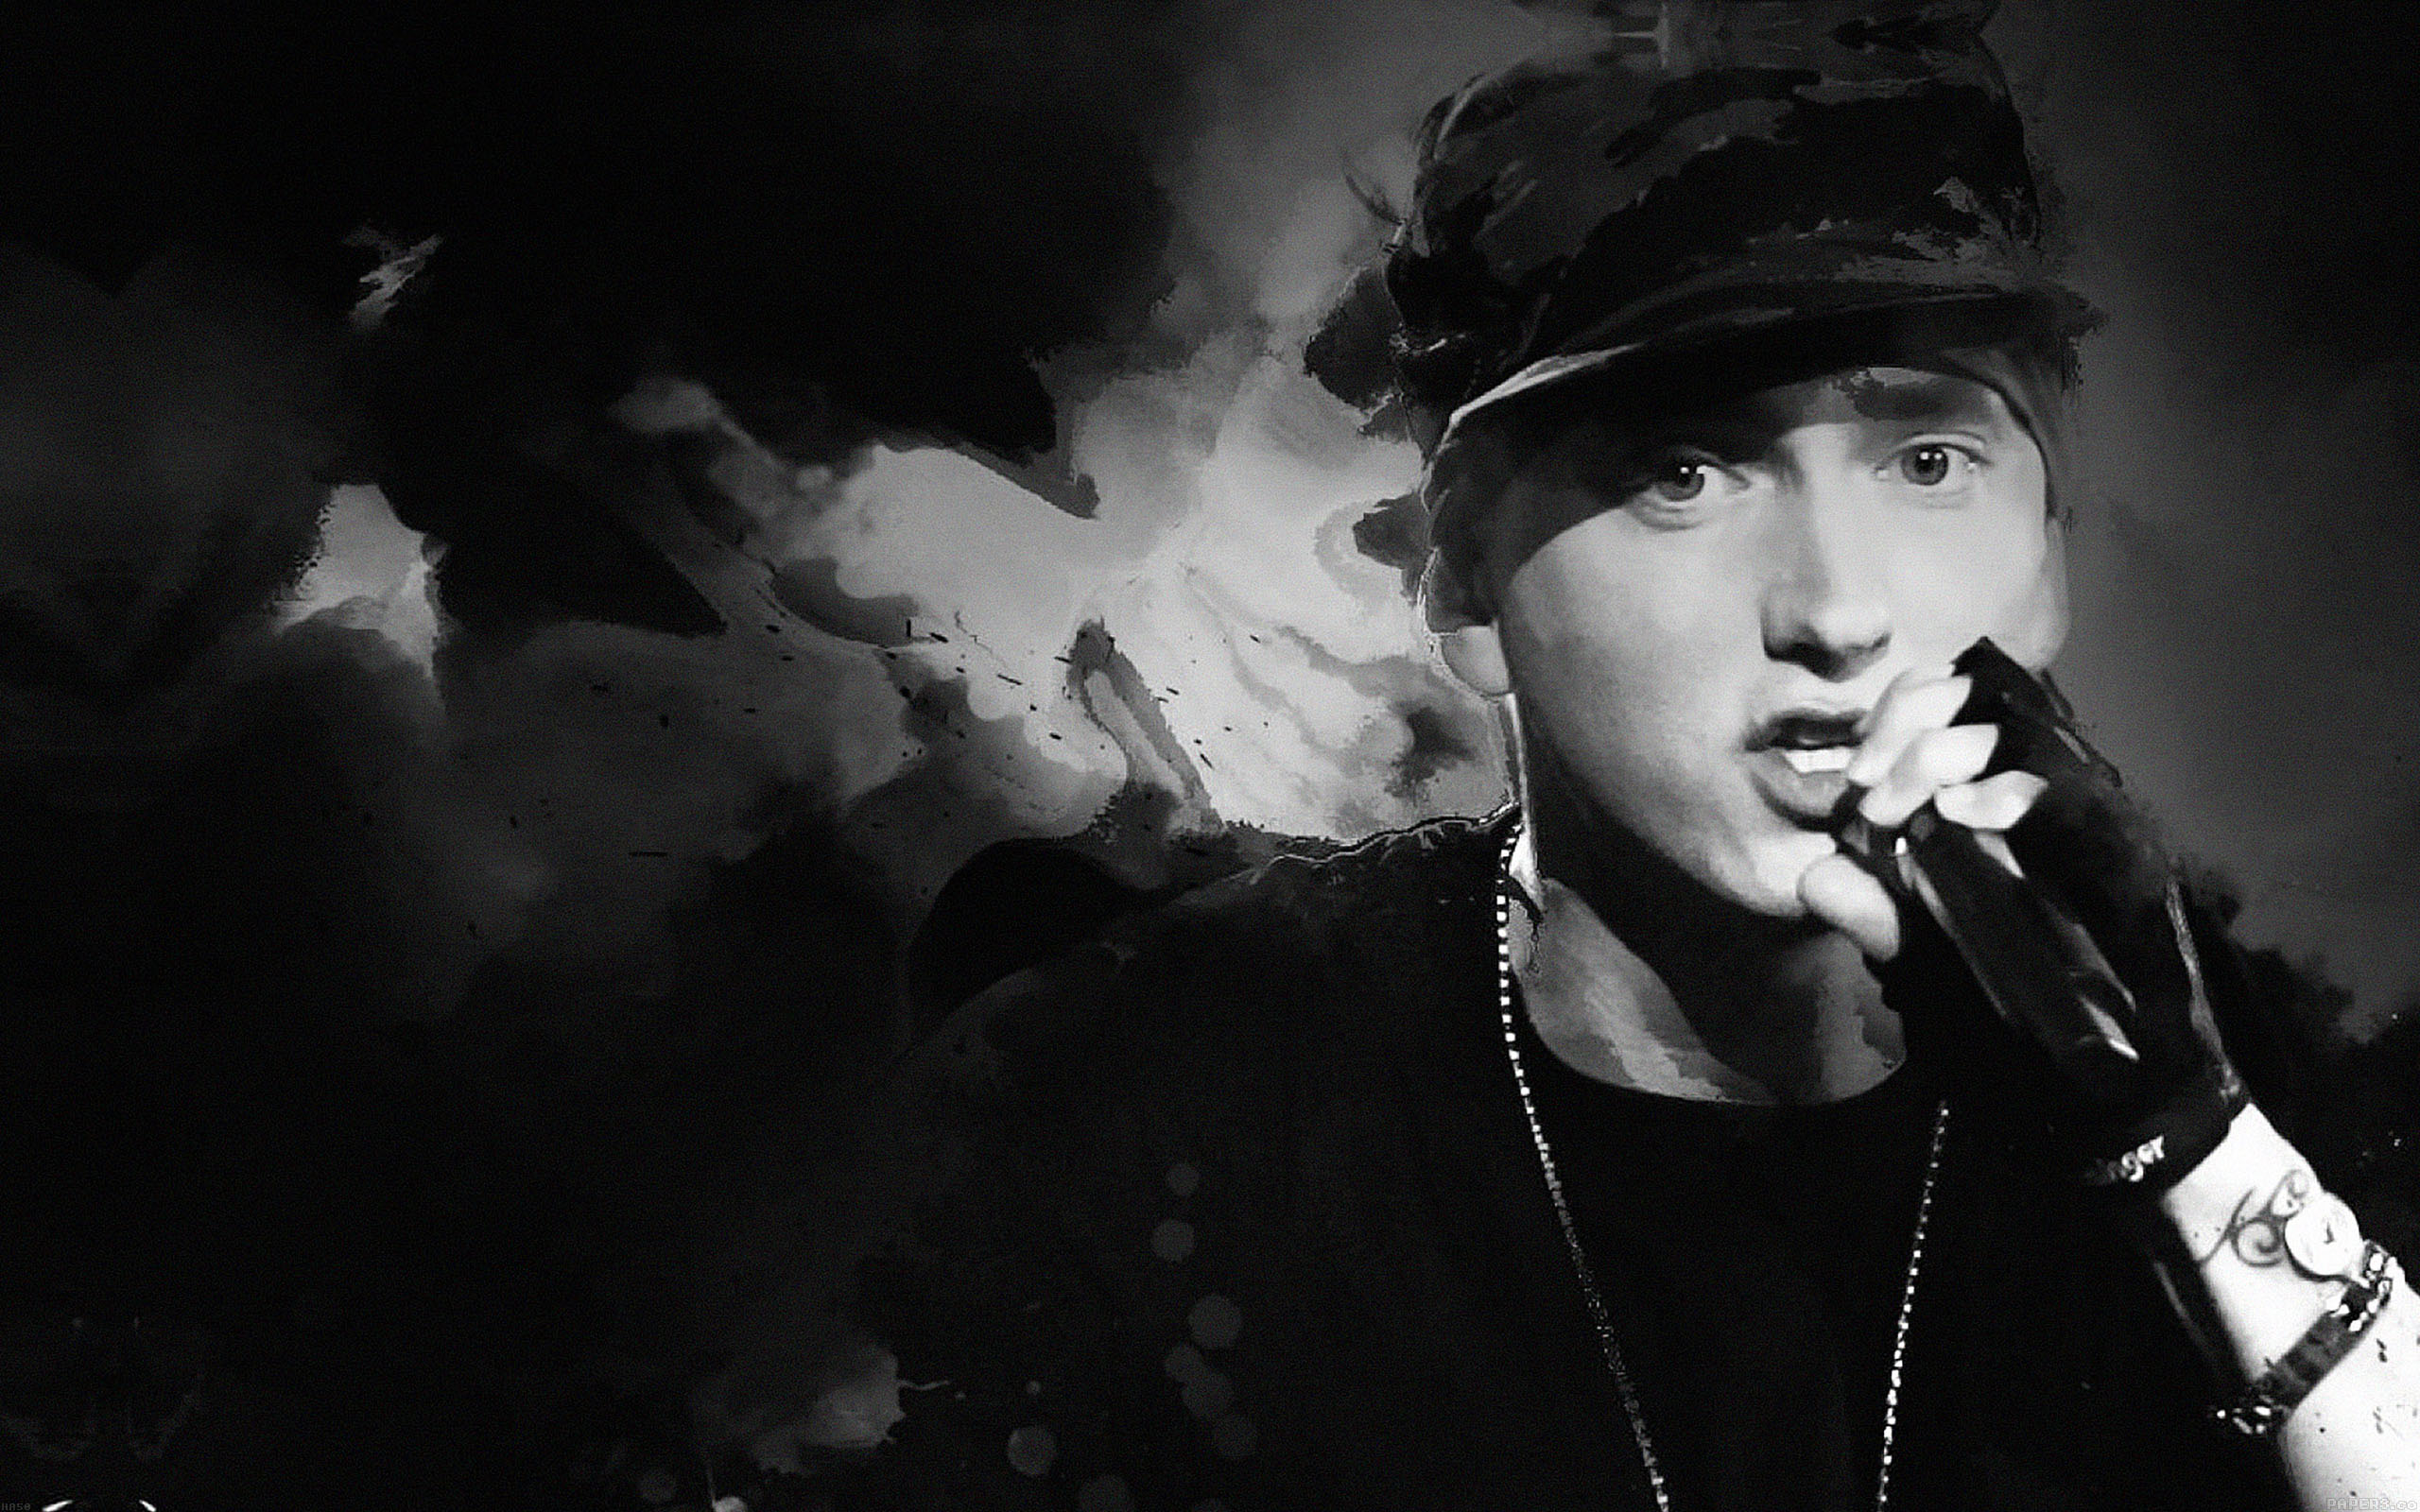 Eminem Wallpaper Iphone 5 Ha50 Wallpaper Eminem Music Face Papers Co